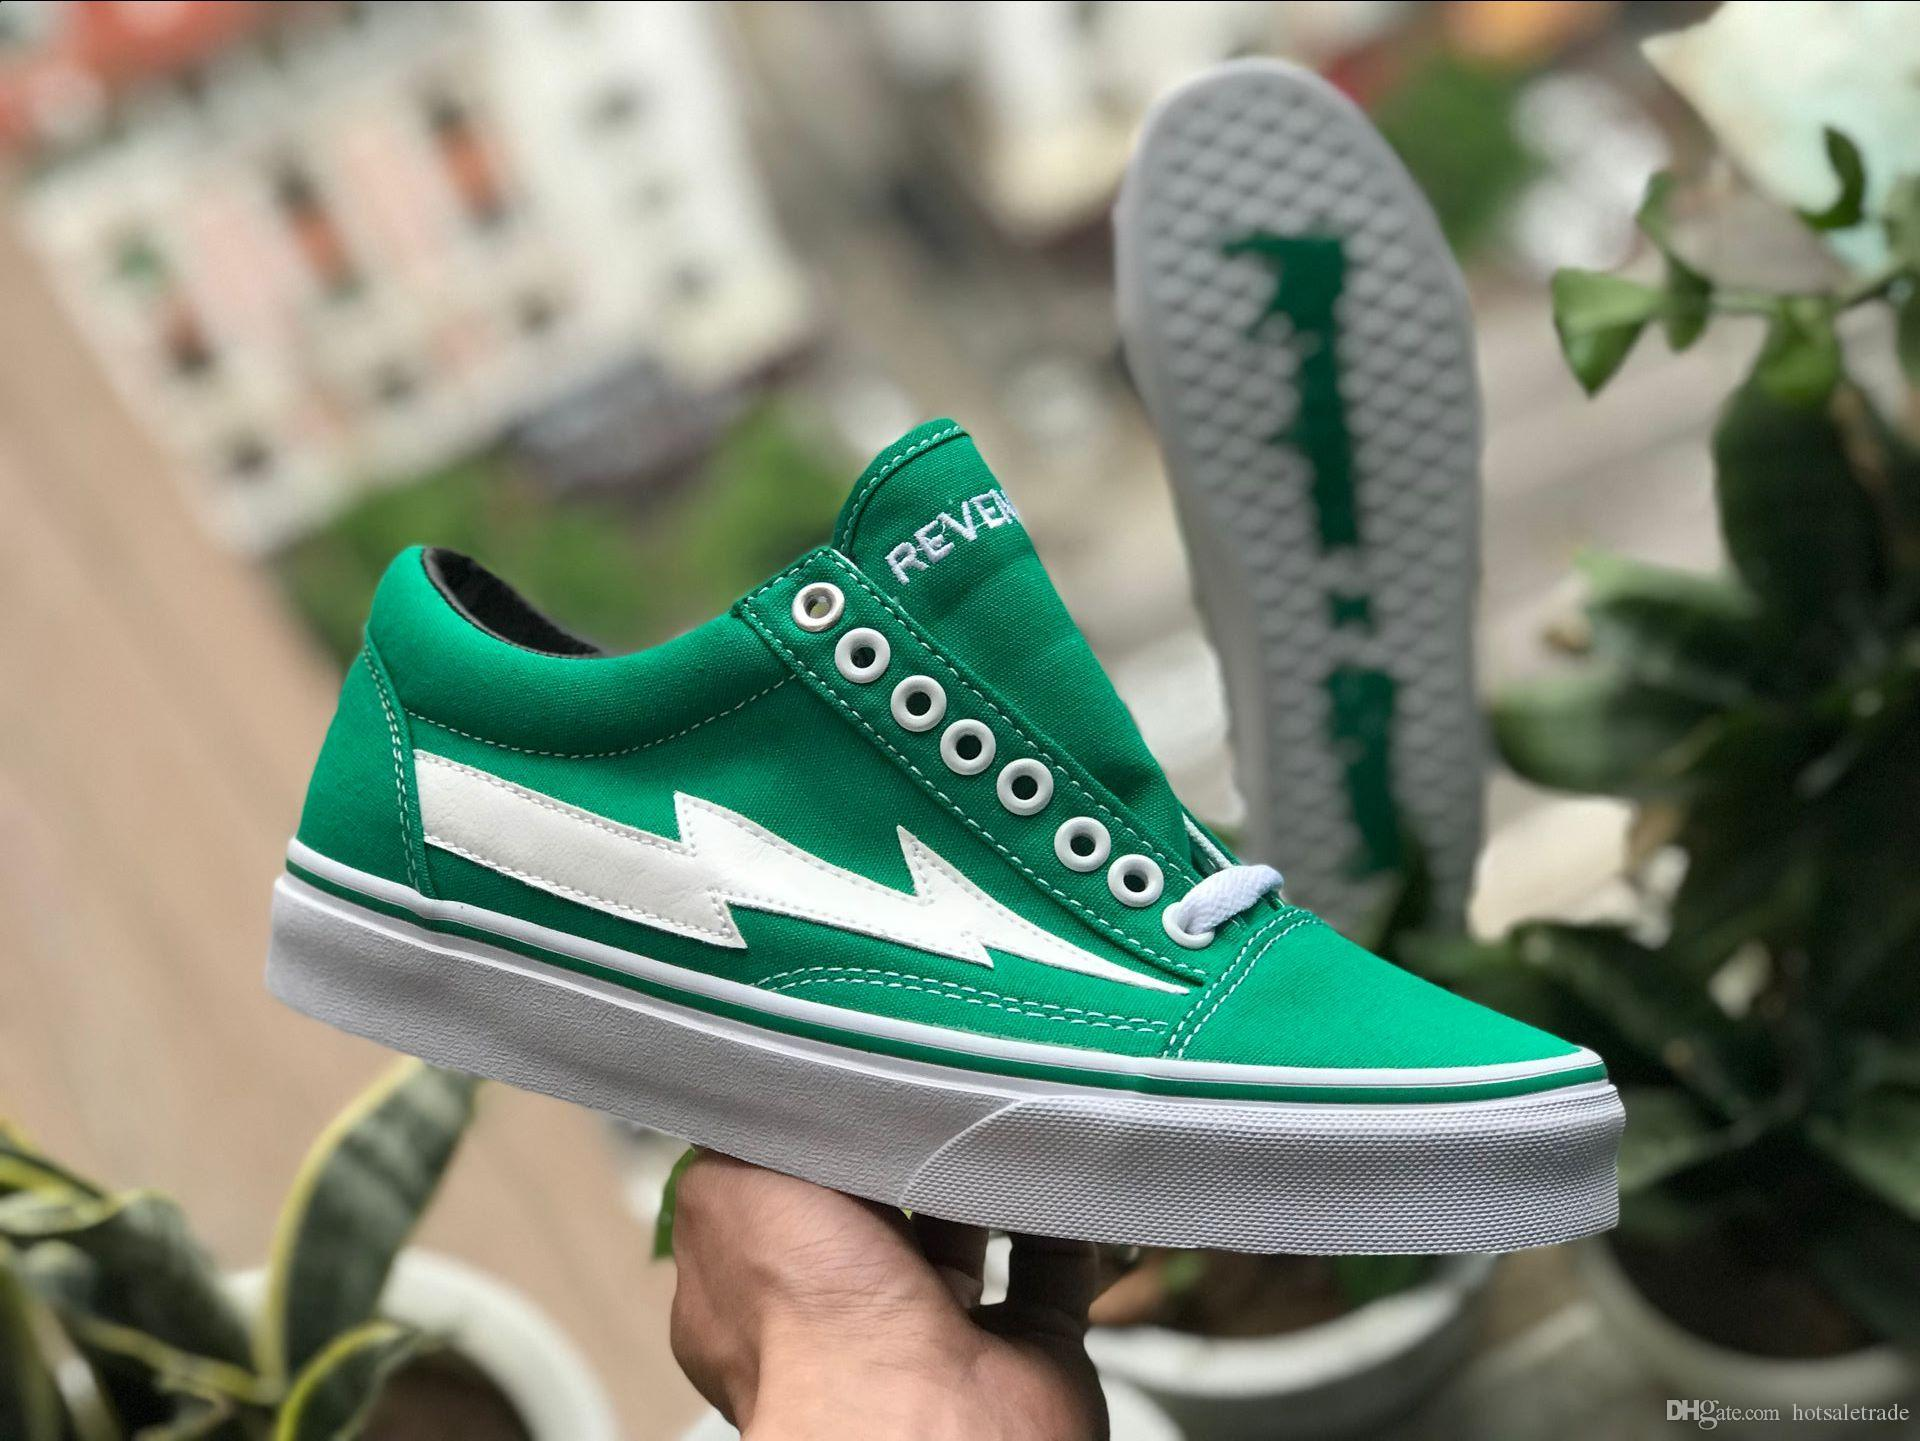 ... Calabasas Stylist Ian Connors Revenge X Storm Green Sneakers Kanye West  Calabasas Casual Shoe Men Women ... 3e74c5a8c6